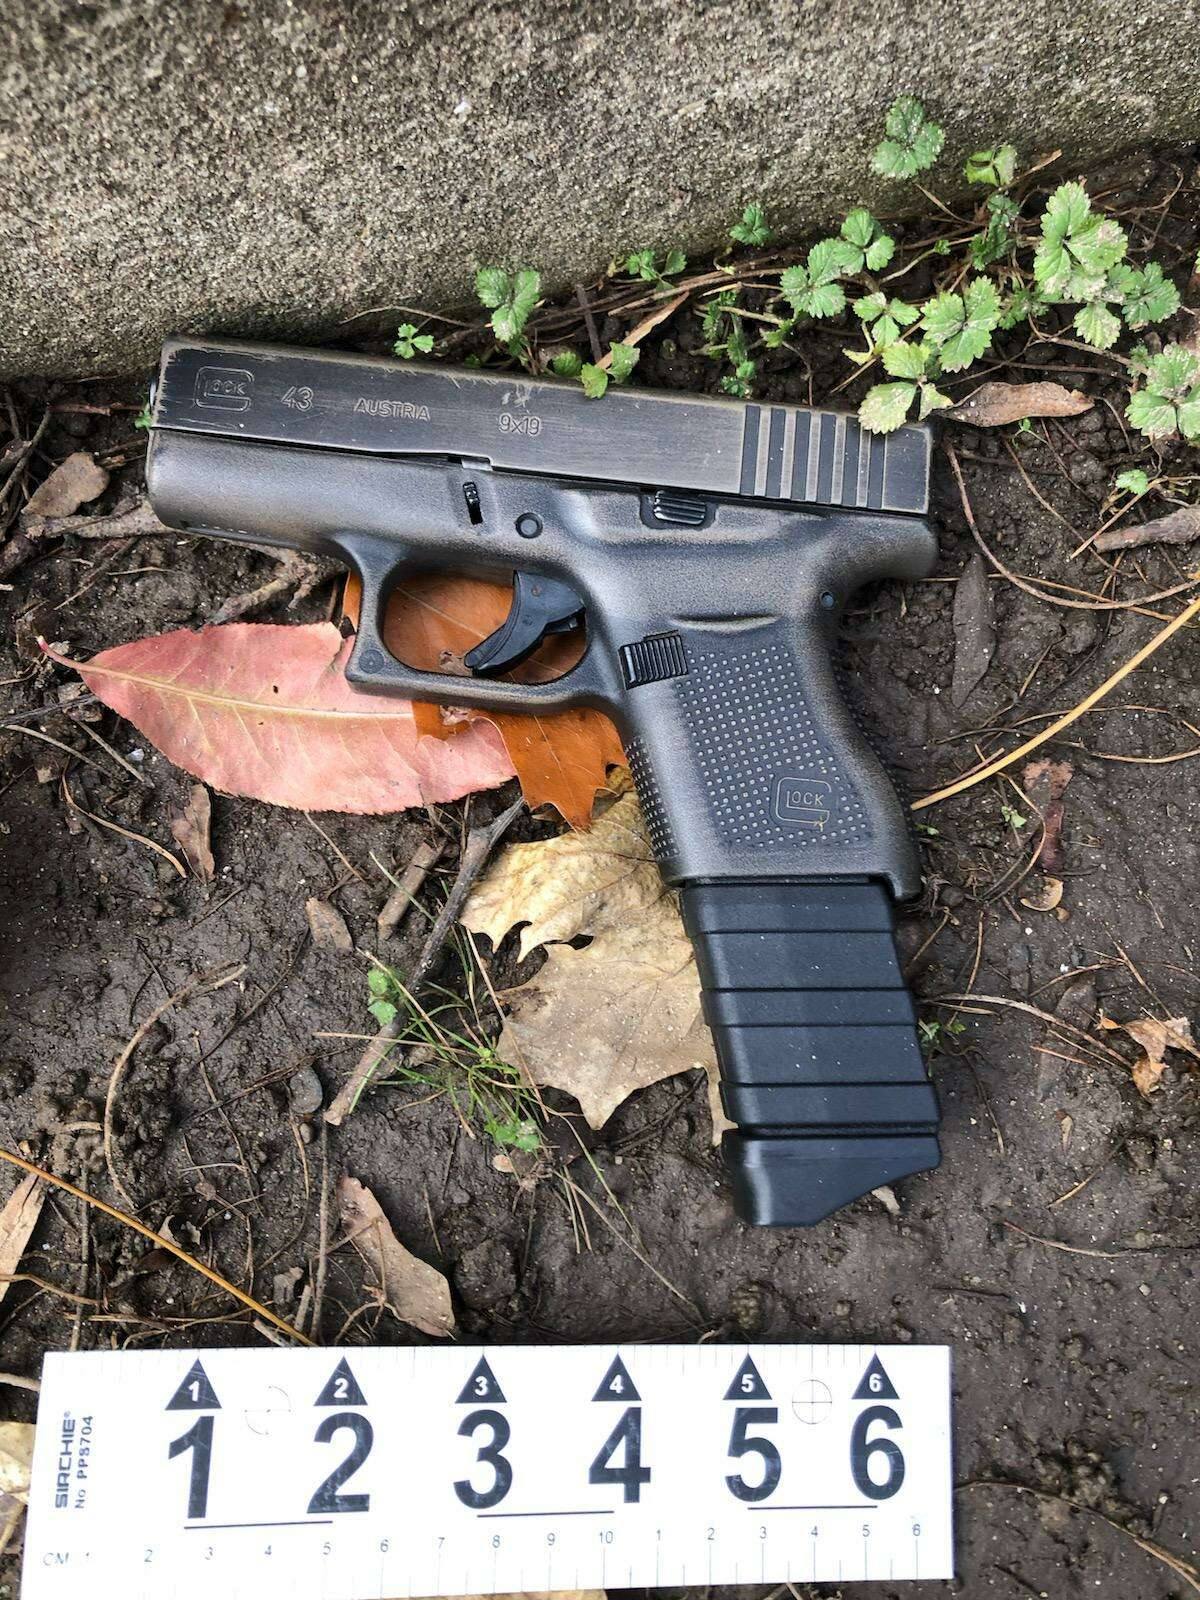 Police say this 9mm Glock semiautomatic pistol was found Monday morning at the scene of a shooting that took place on West Broad Street Sunday afternoon, Dec. 6, 2020.